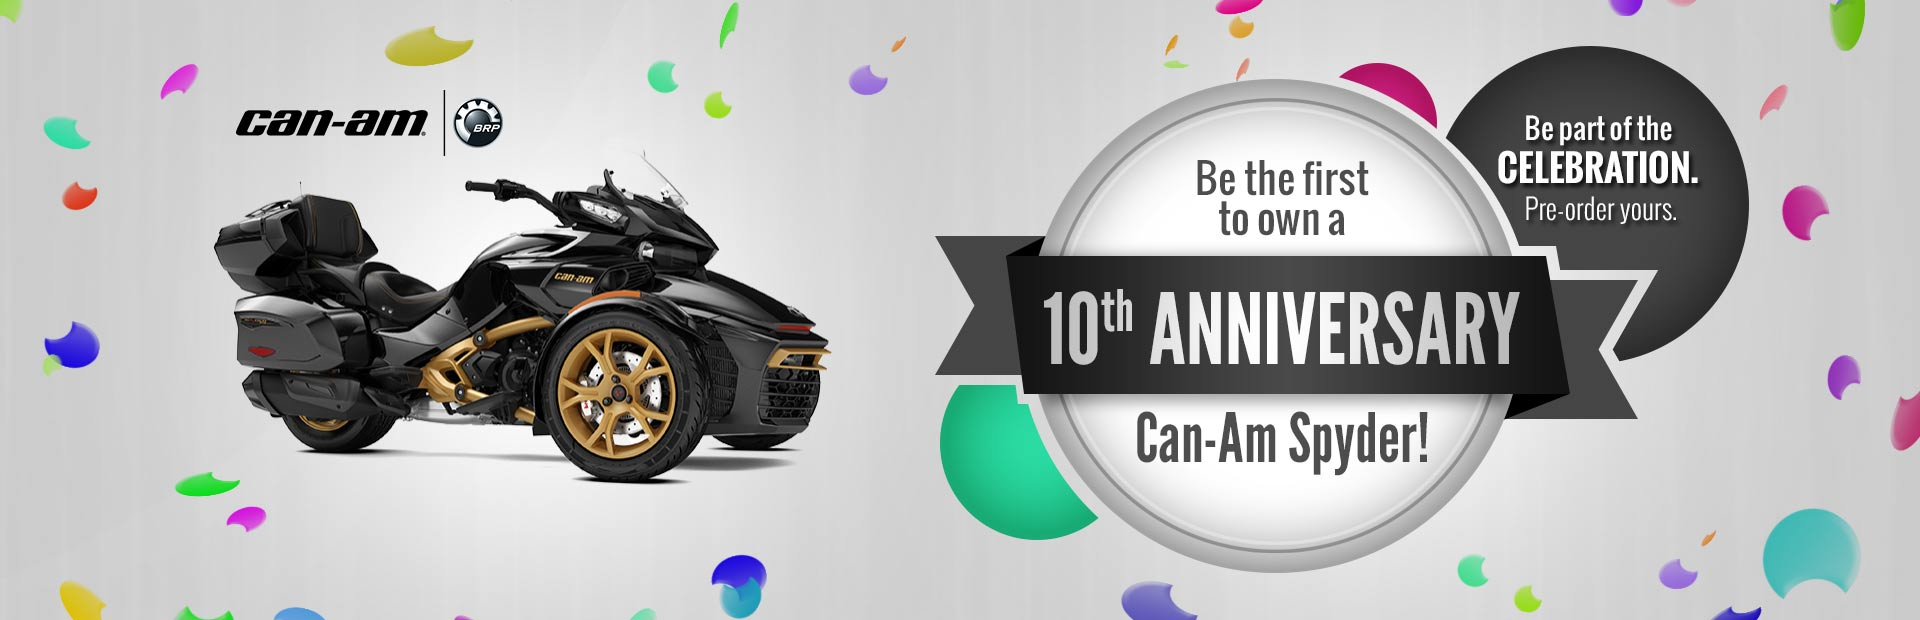 Be the first to own a 10th Anniversary Can-Am Spyder!